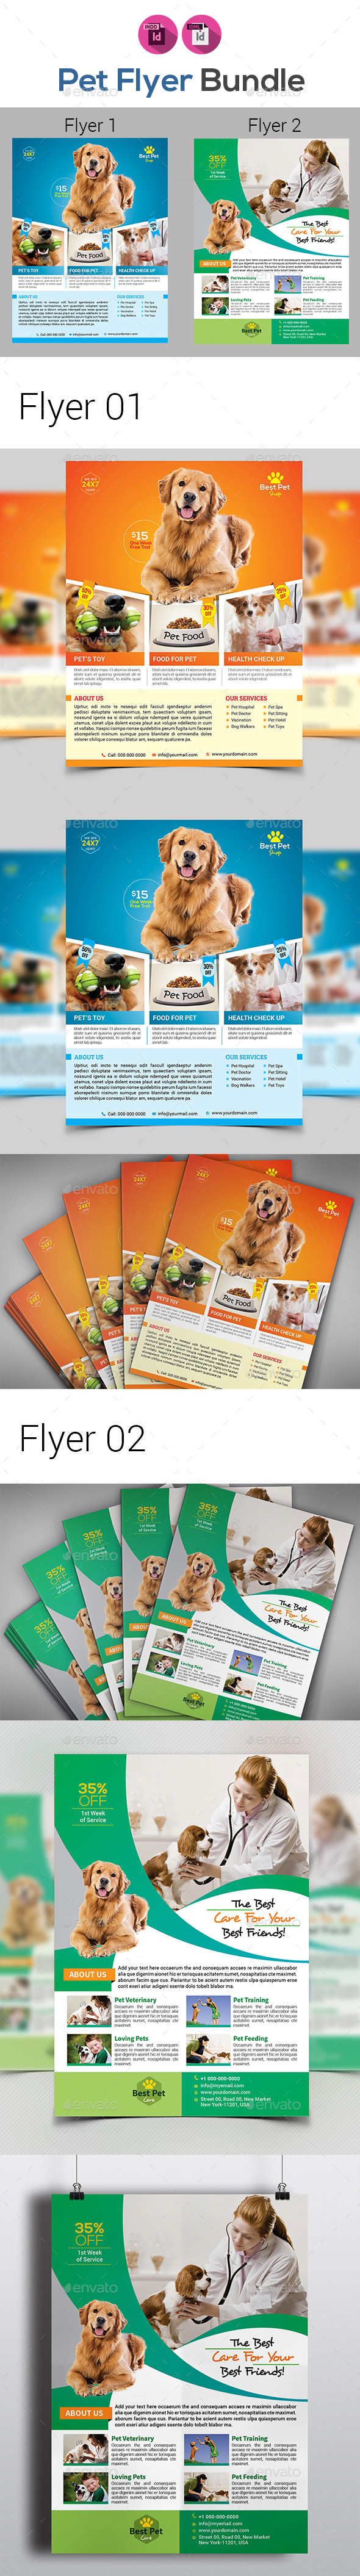 Pet Shop Flyers Bundle - Corporate Flyers